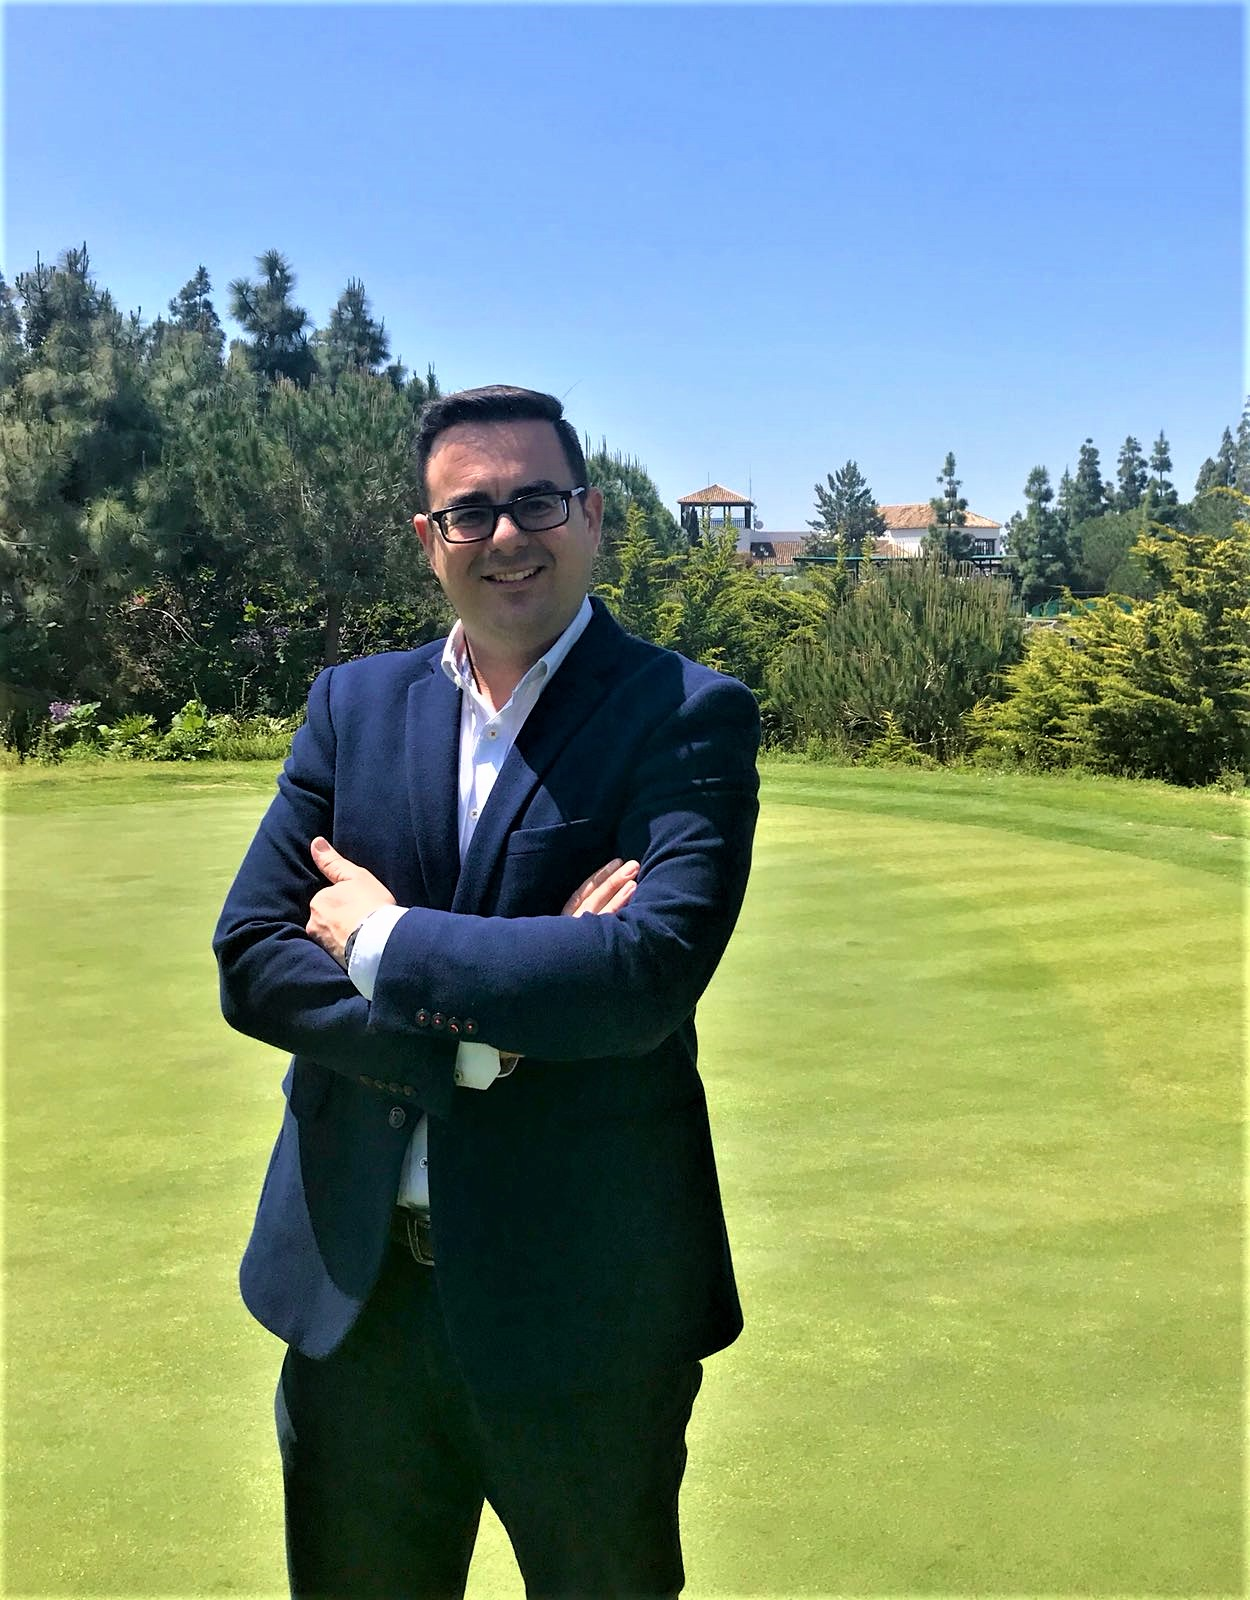 domingo_gavira_managing_director_chaparral_golf_club